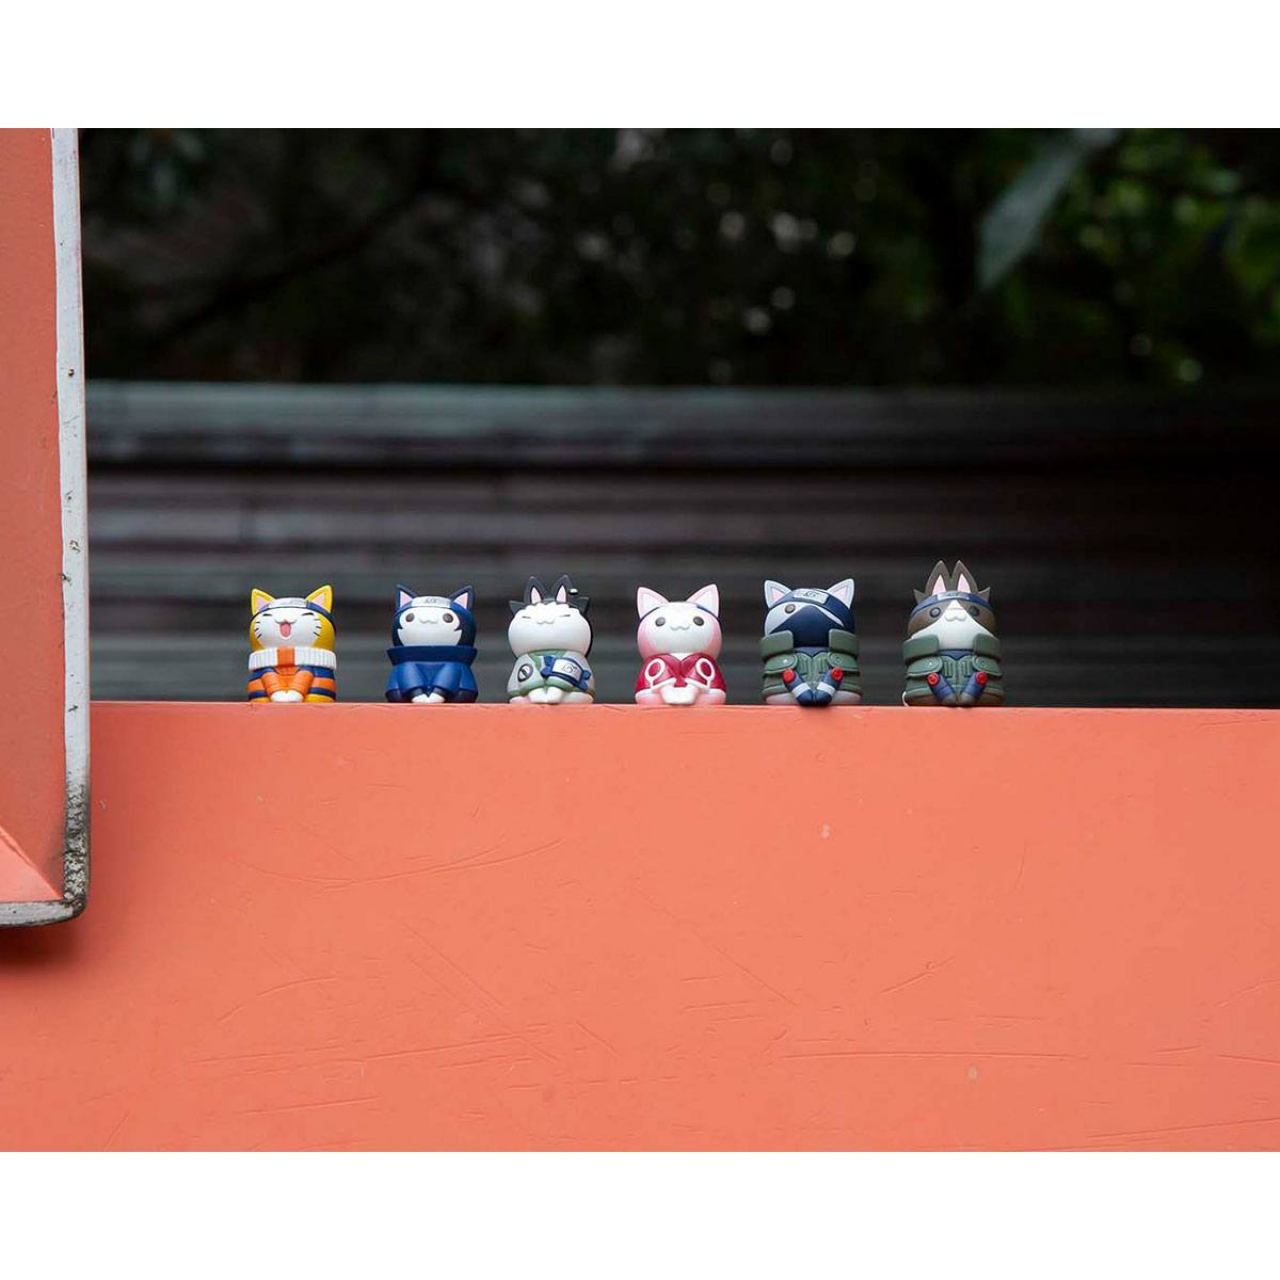 Naruto Shippuden Nyaruto! Trading Figure 3 cm Cats of Konoha Village Assortment (8)